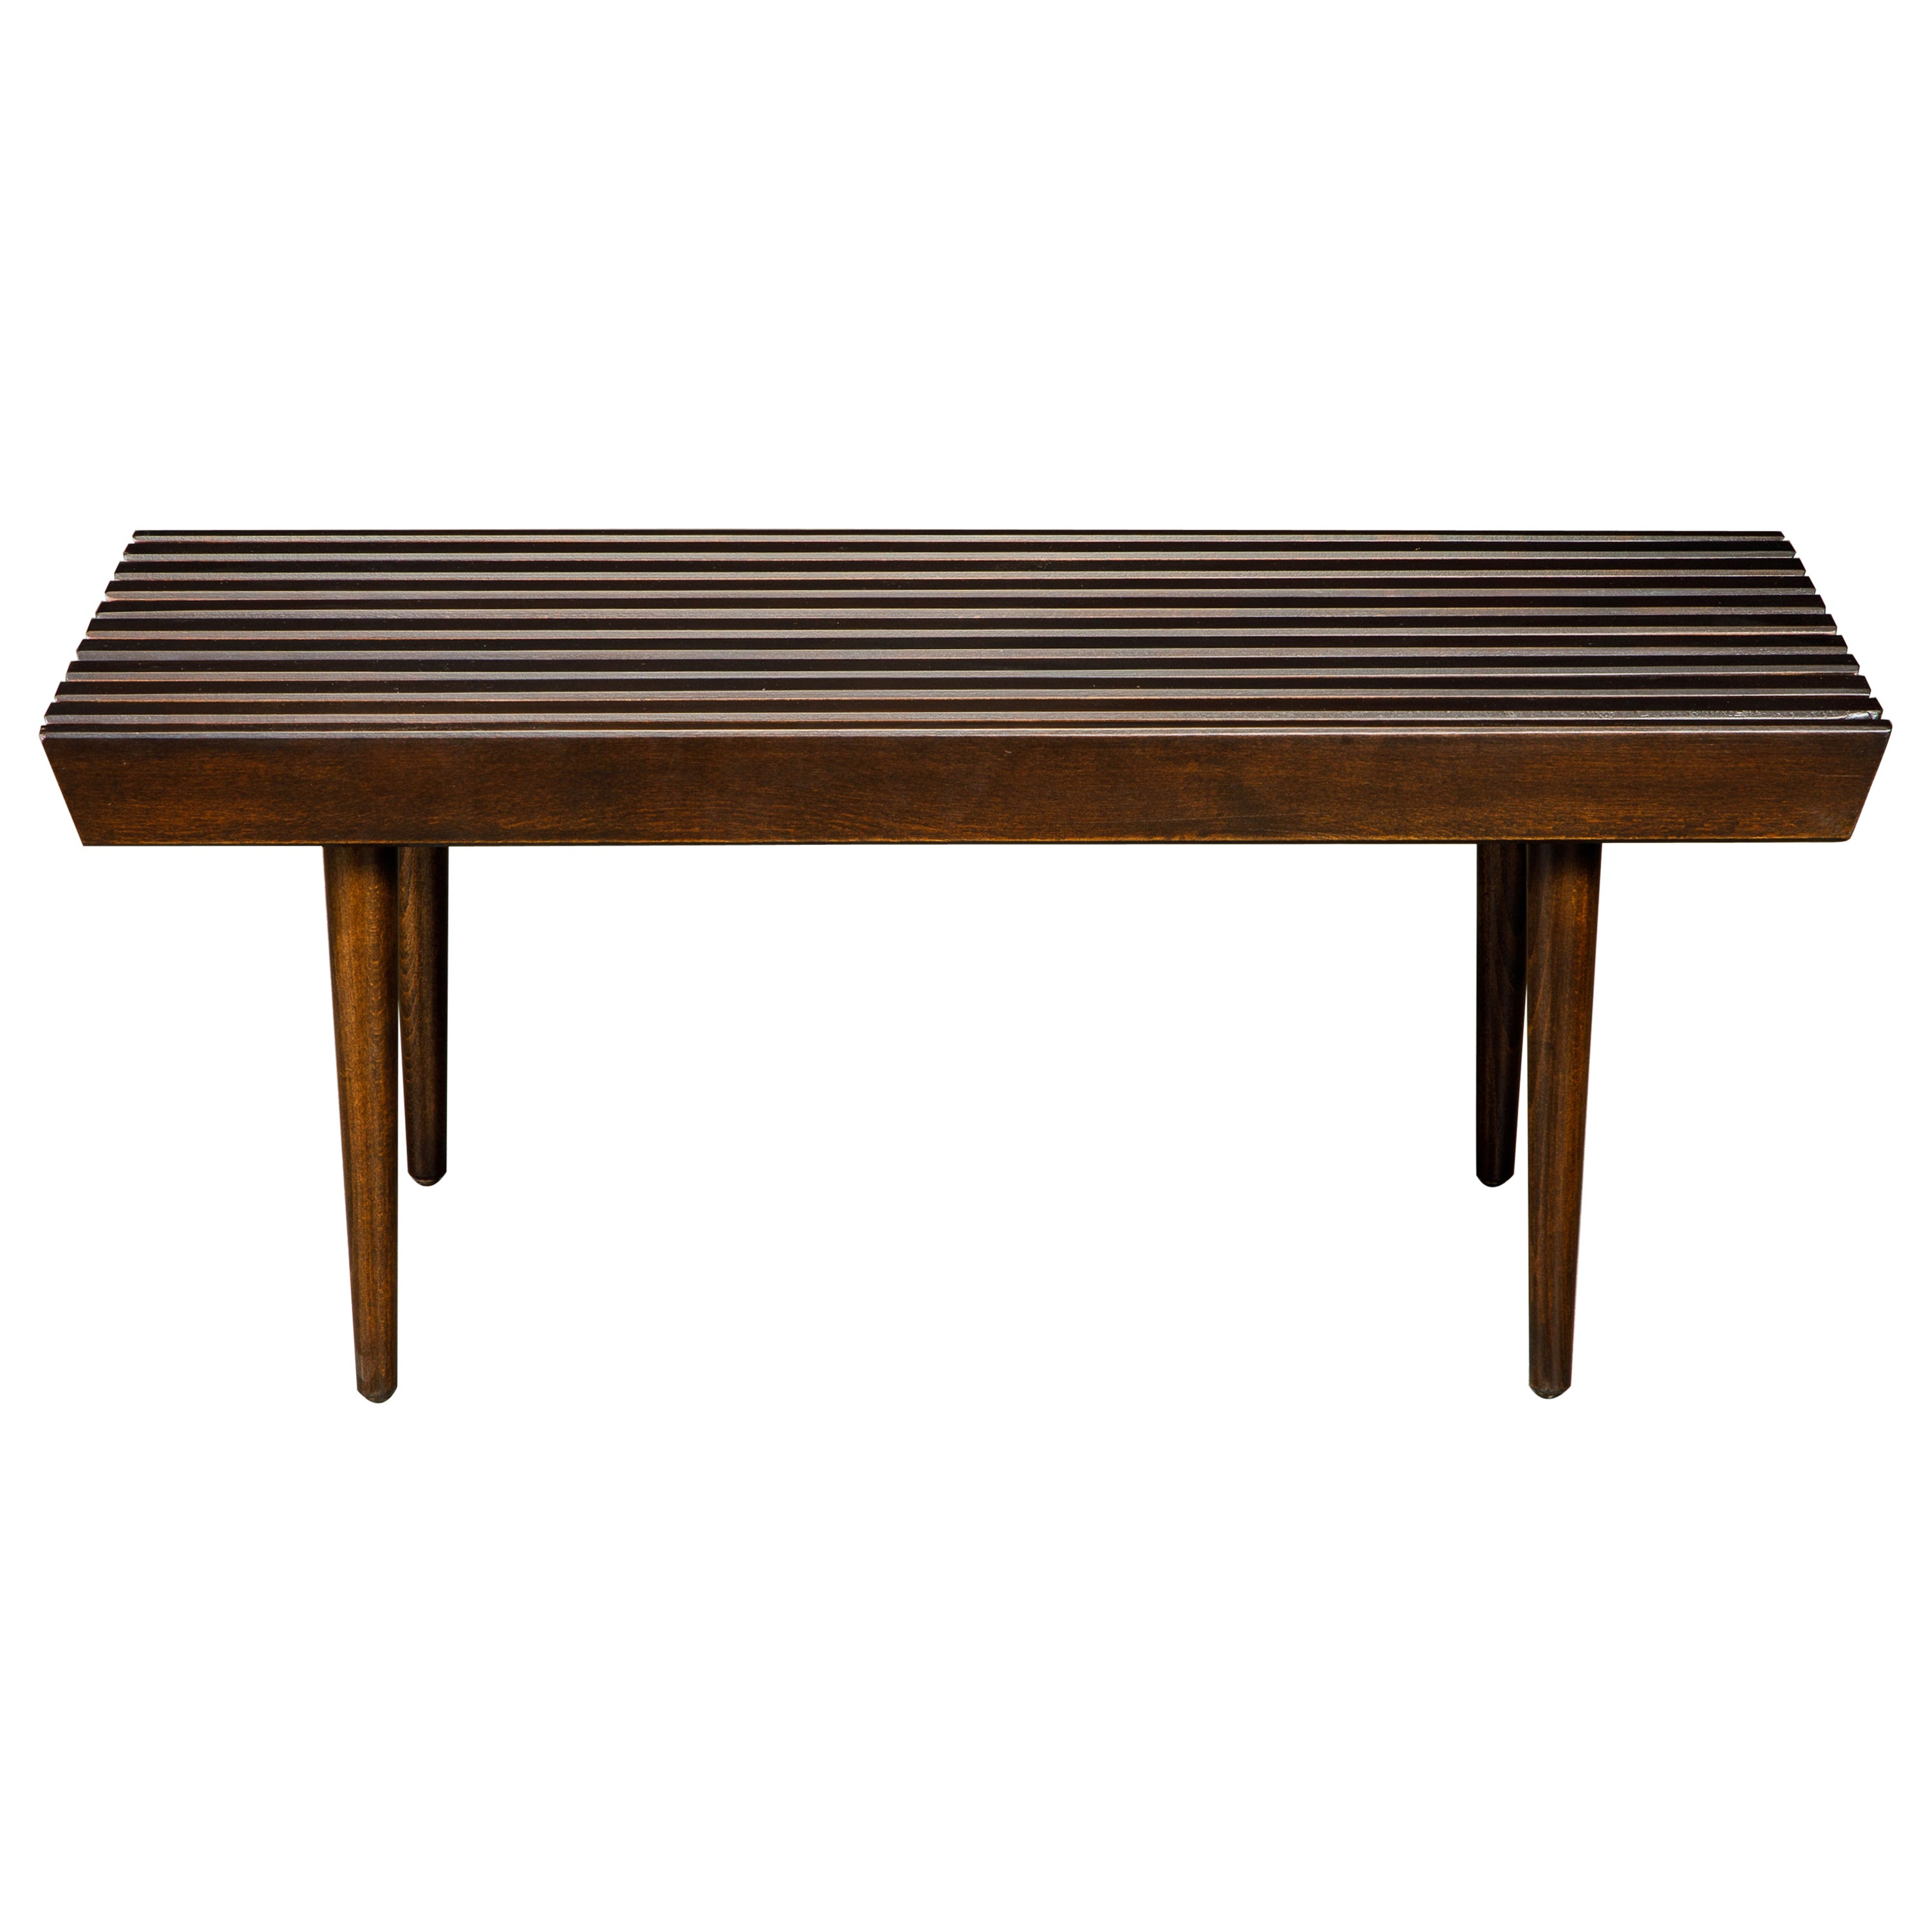 Refinished George Nelson Style Slatted Wood Bench or Table, circa 1960